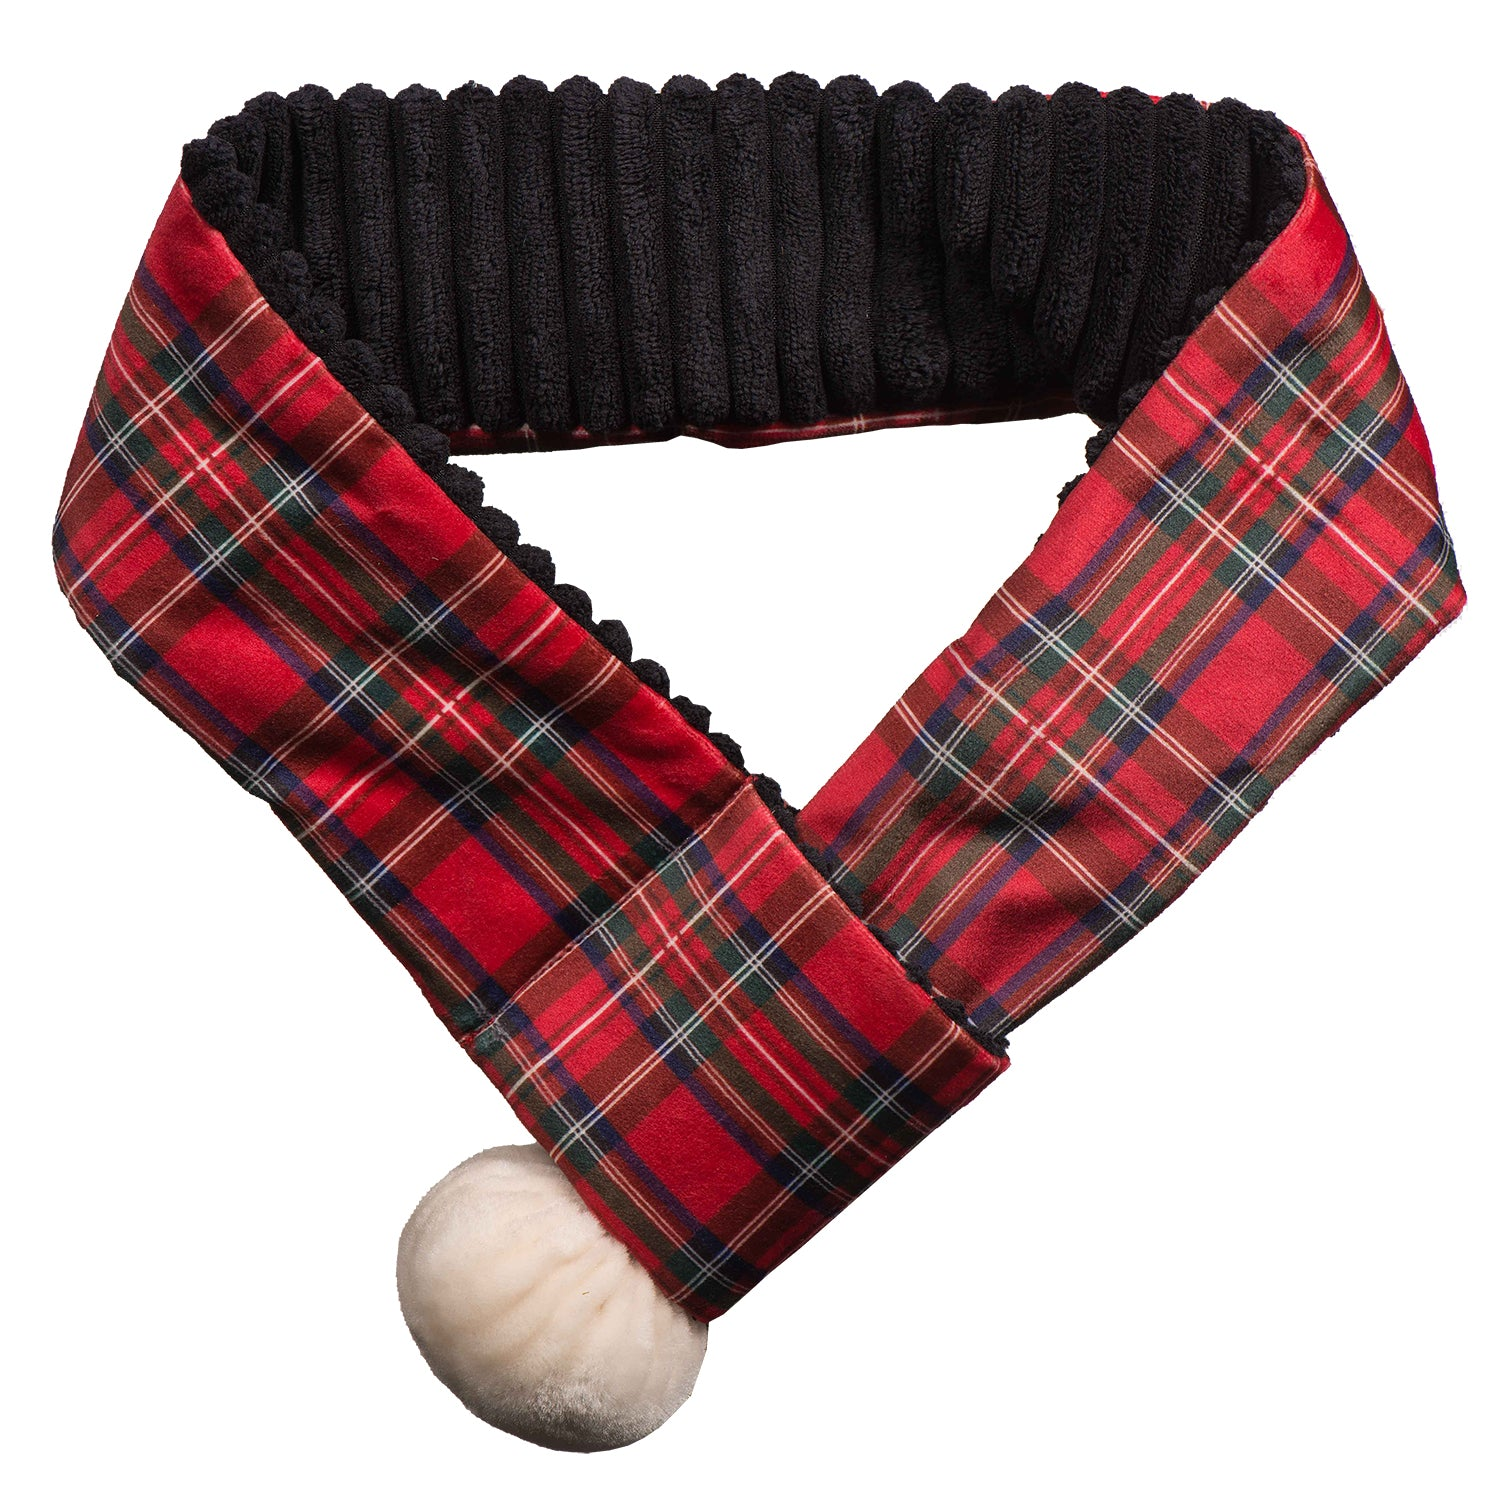 HuggleHounds Holiday 2020 Totally Tartan Scarf - Large (fits necks 18-25